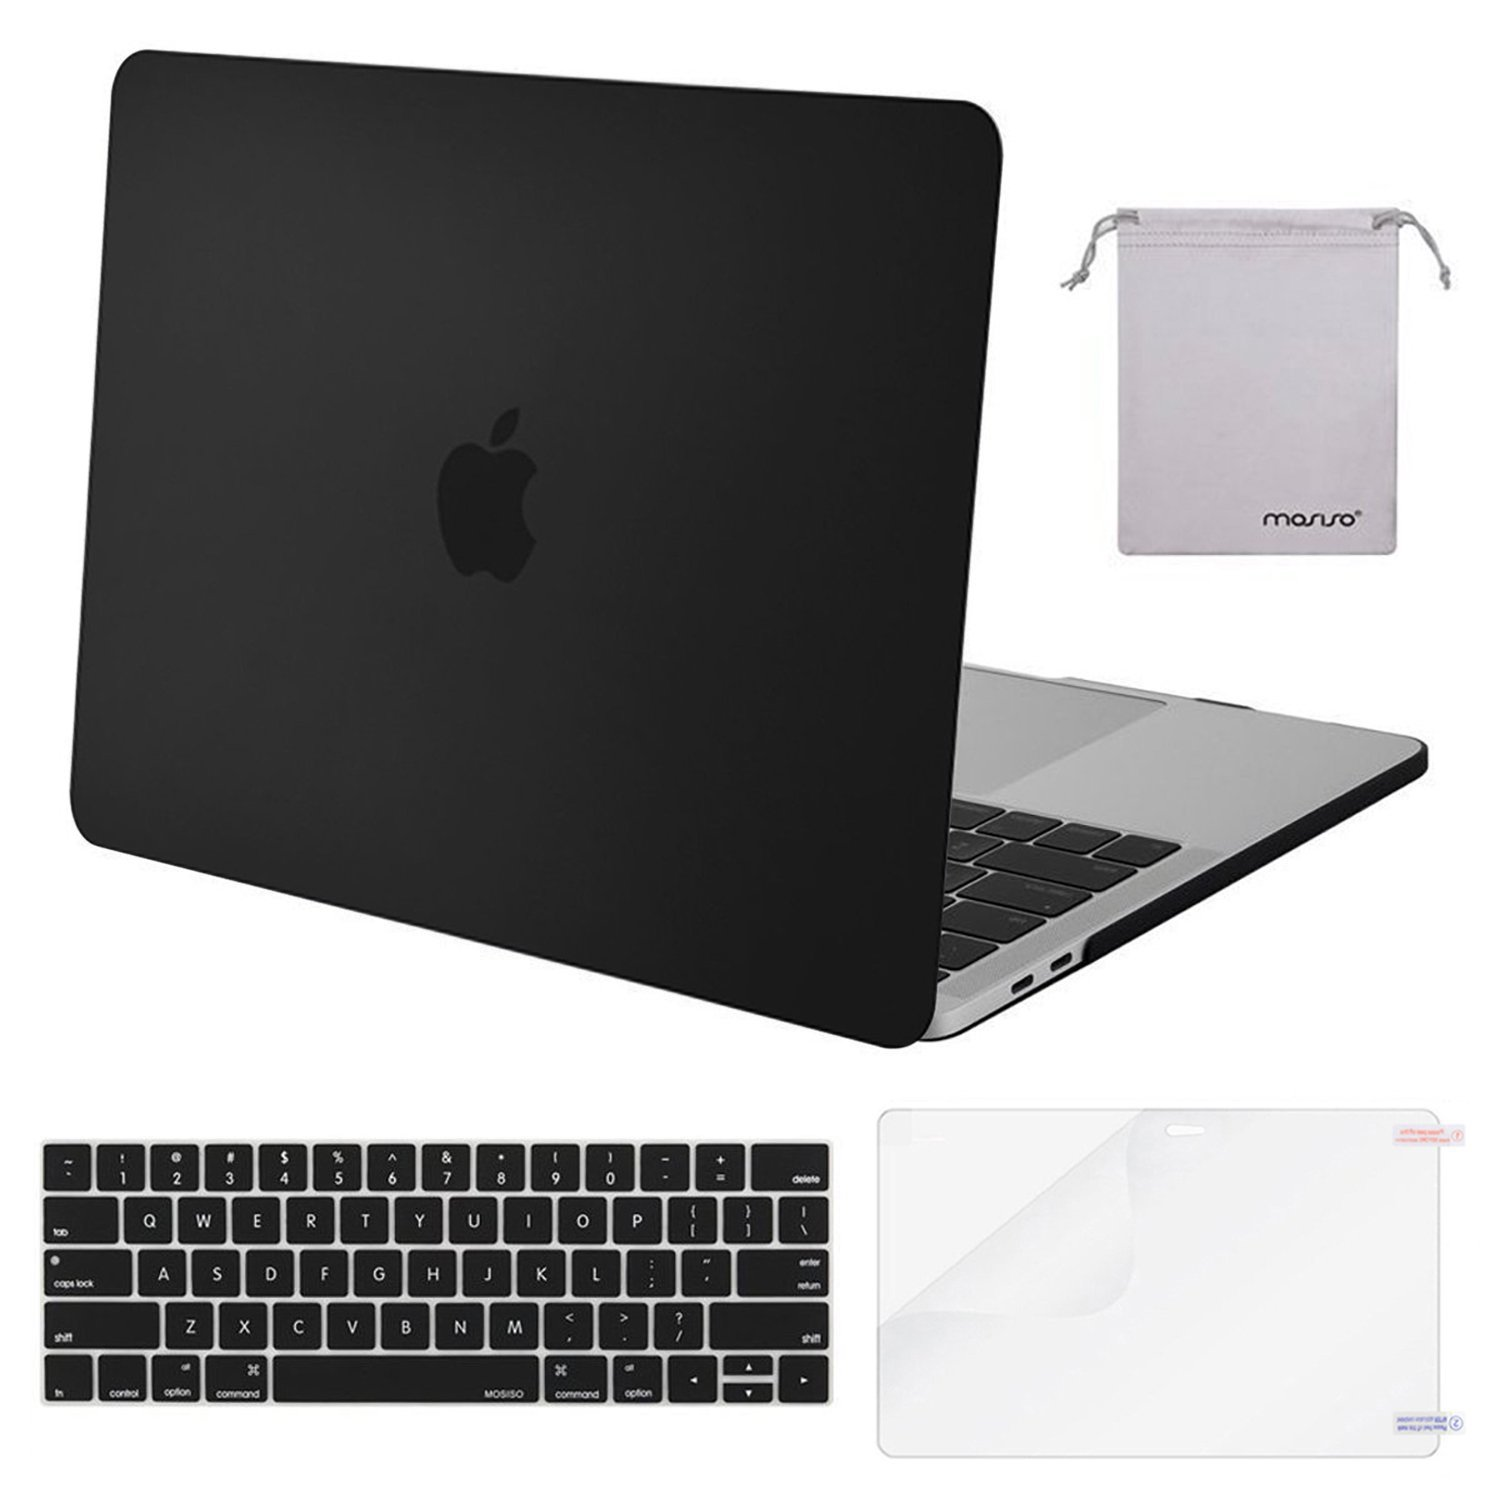 MOSISO MacBook Pro 13 Case 2018 2017 2016 Release A1989/A1706/A1708, Plastic Hard Shell with Keyboard Cover with Screen Protector with Storage Bag Compatible Newest Mac Pro 13 Inch, Black